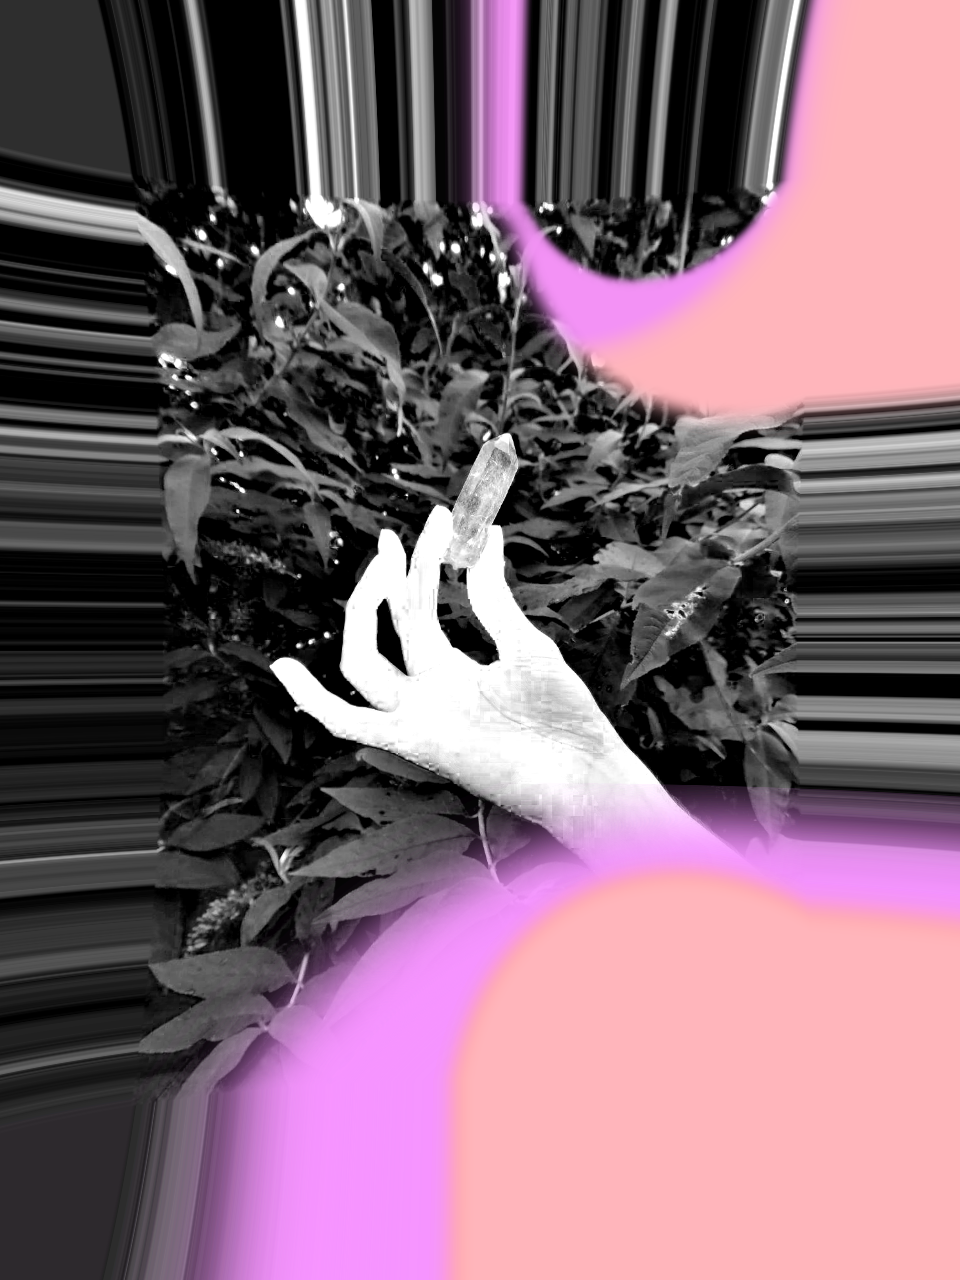 A glitched photo of a hand holding a single quartz crystal, in front of a leavy bush. The photo is mainly black and white, with some pink and apricot accents.